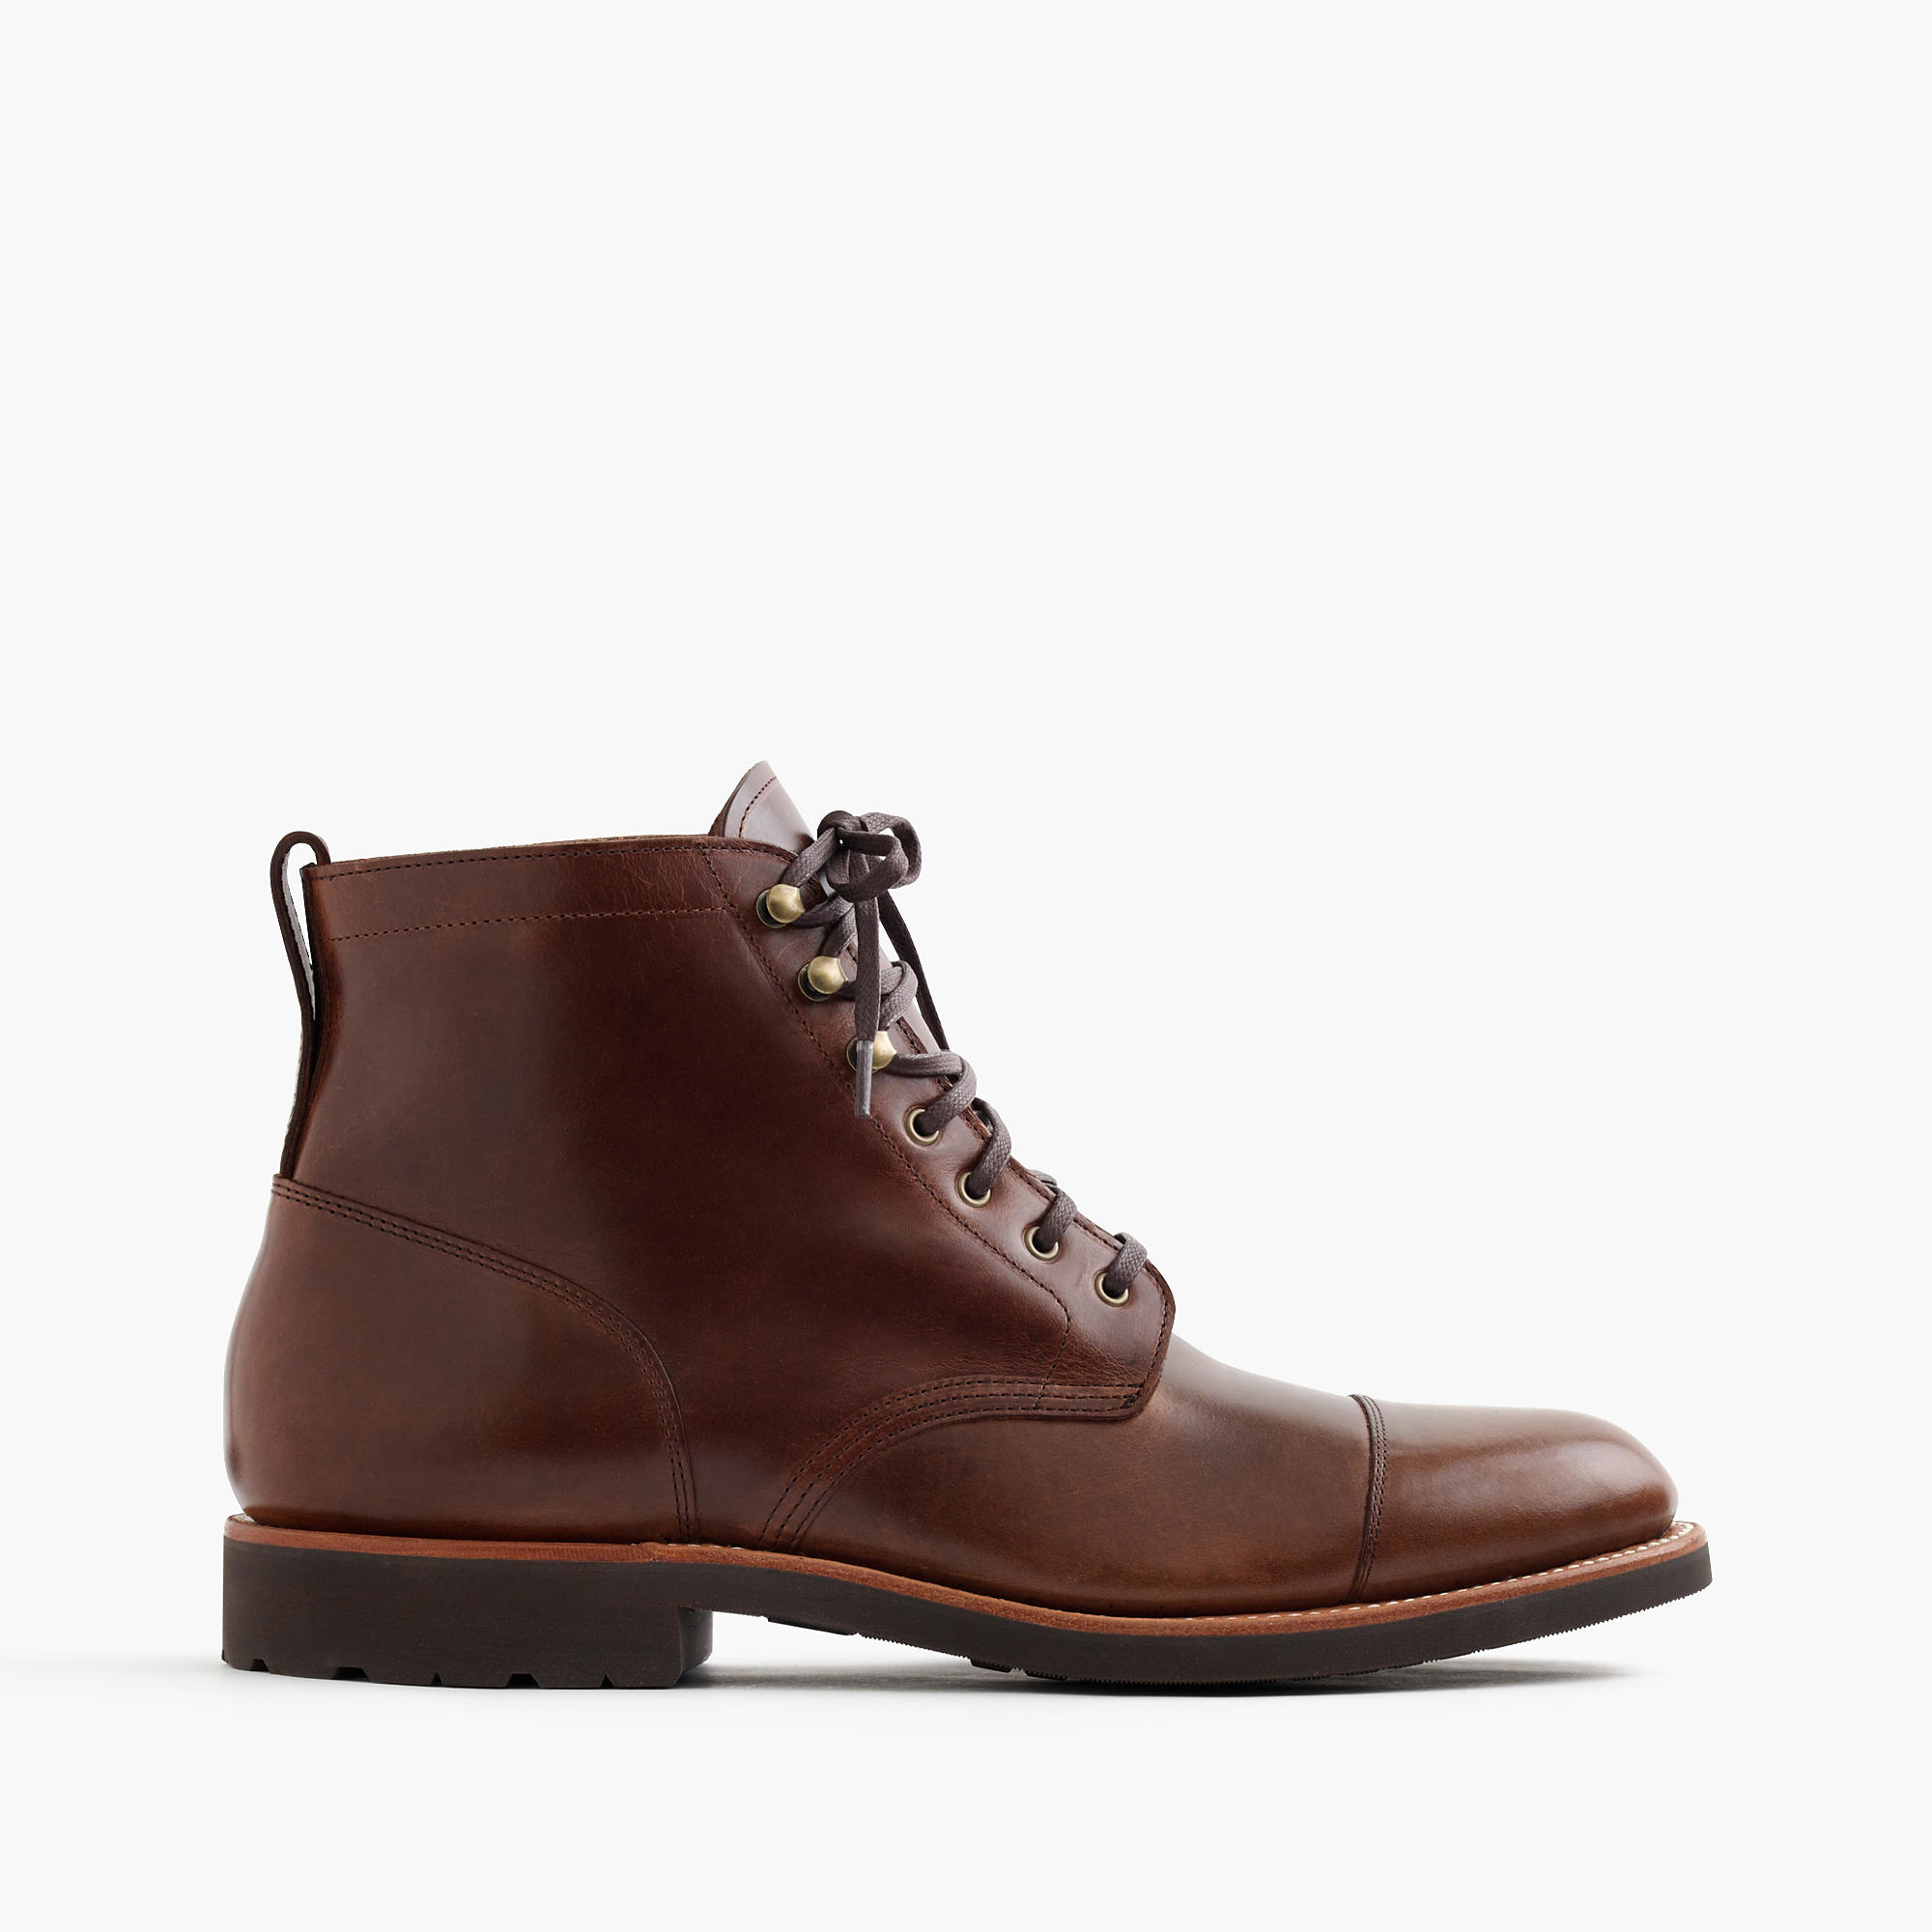 j crew kenton leather cap toe boots in multicolor for